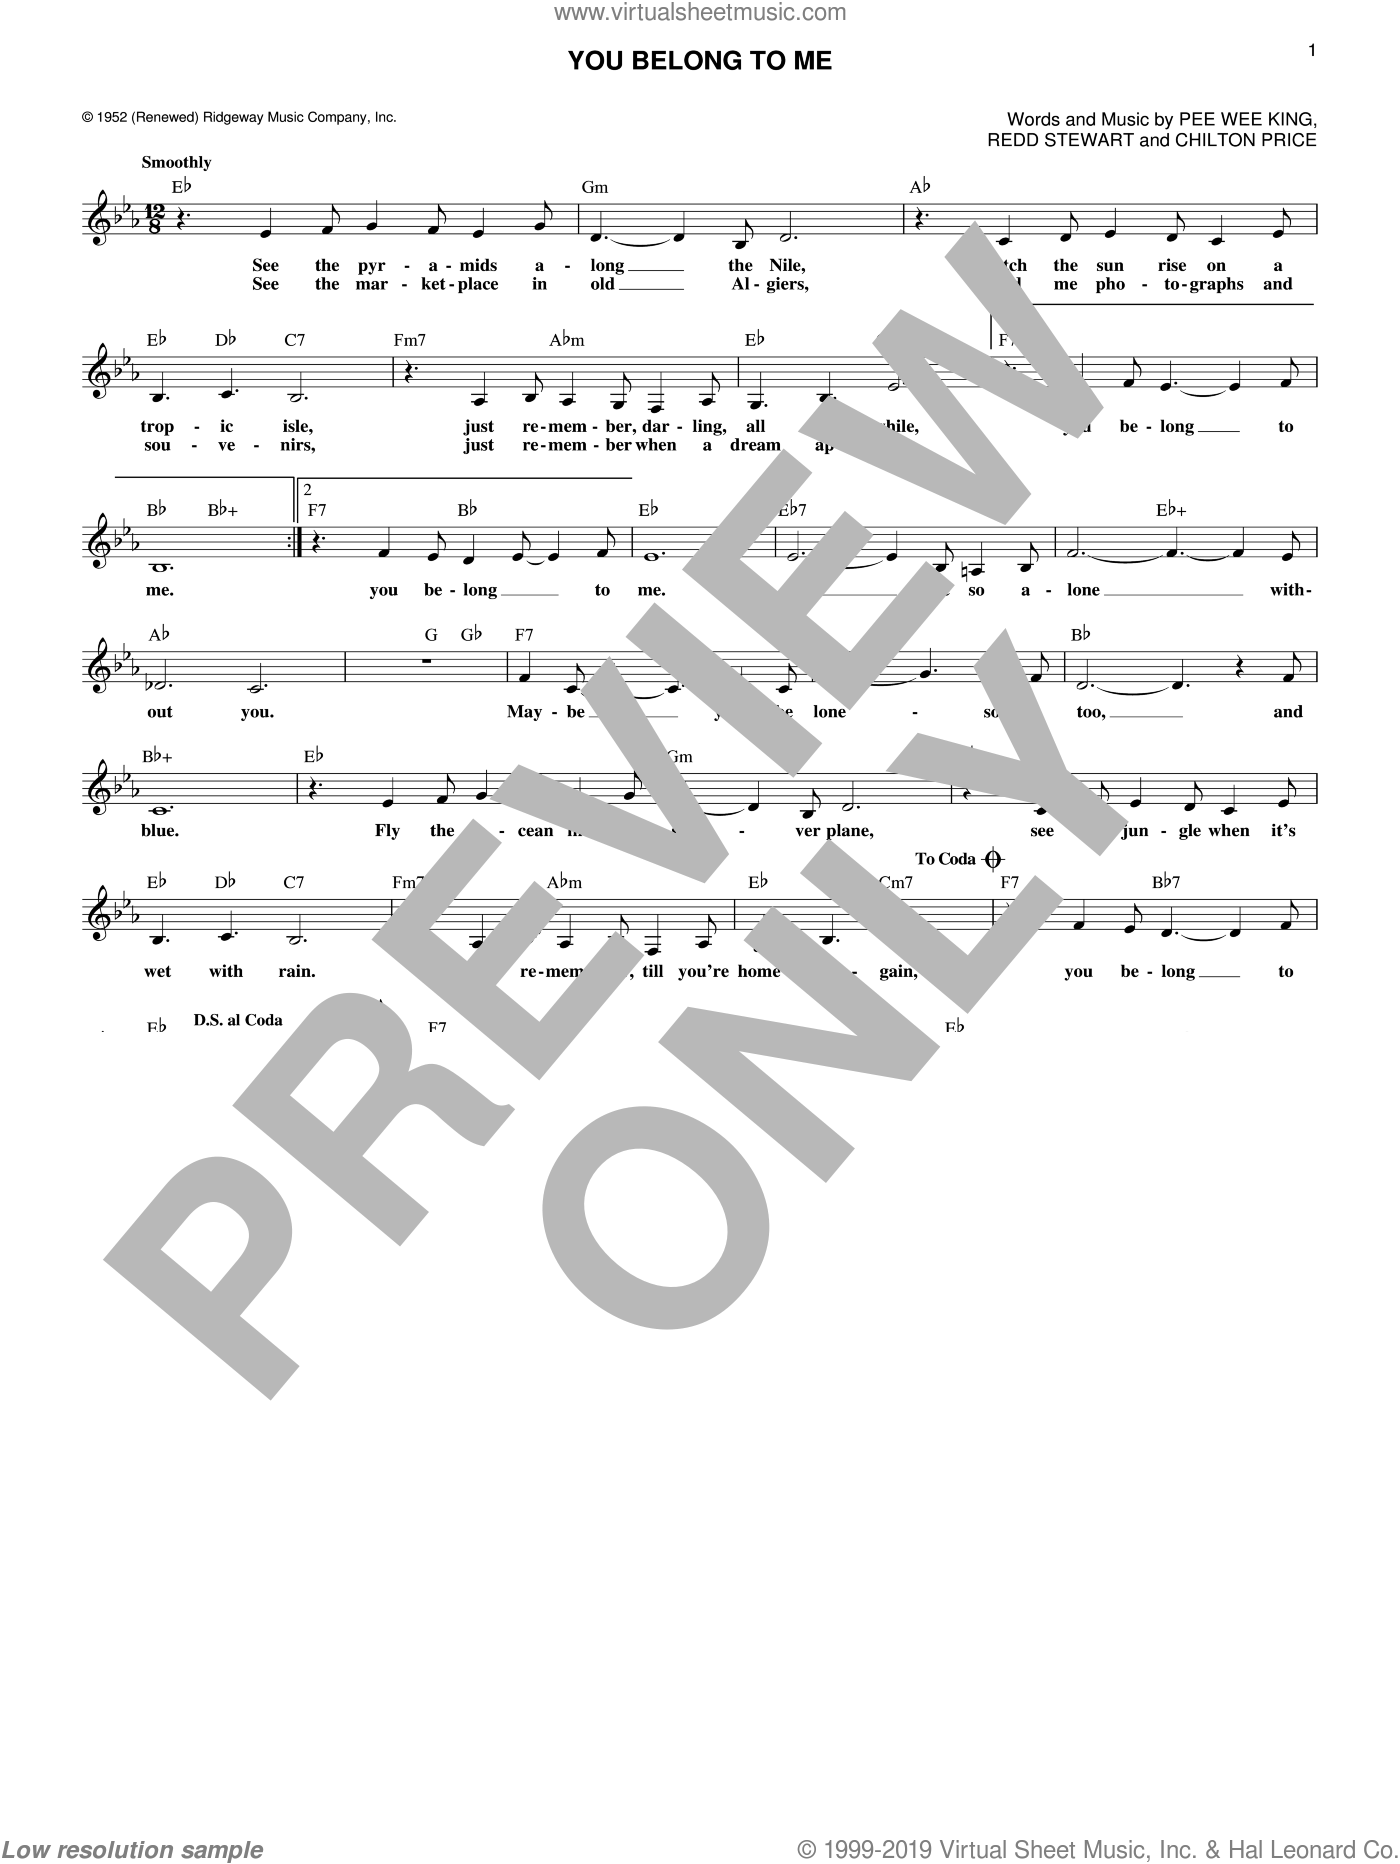 You Belong To Me sheet music for voice and other instruments (fake book) by Patsy Cline, Chilton Price, Pee Wee King and Redd Stewart, intermediate skill level